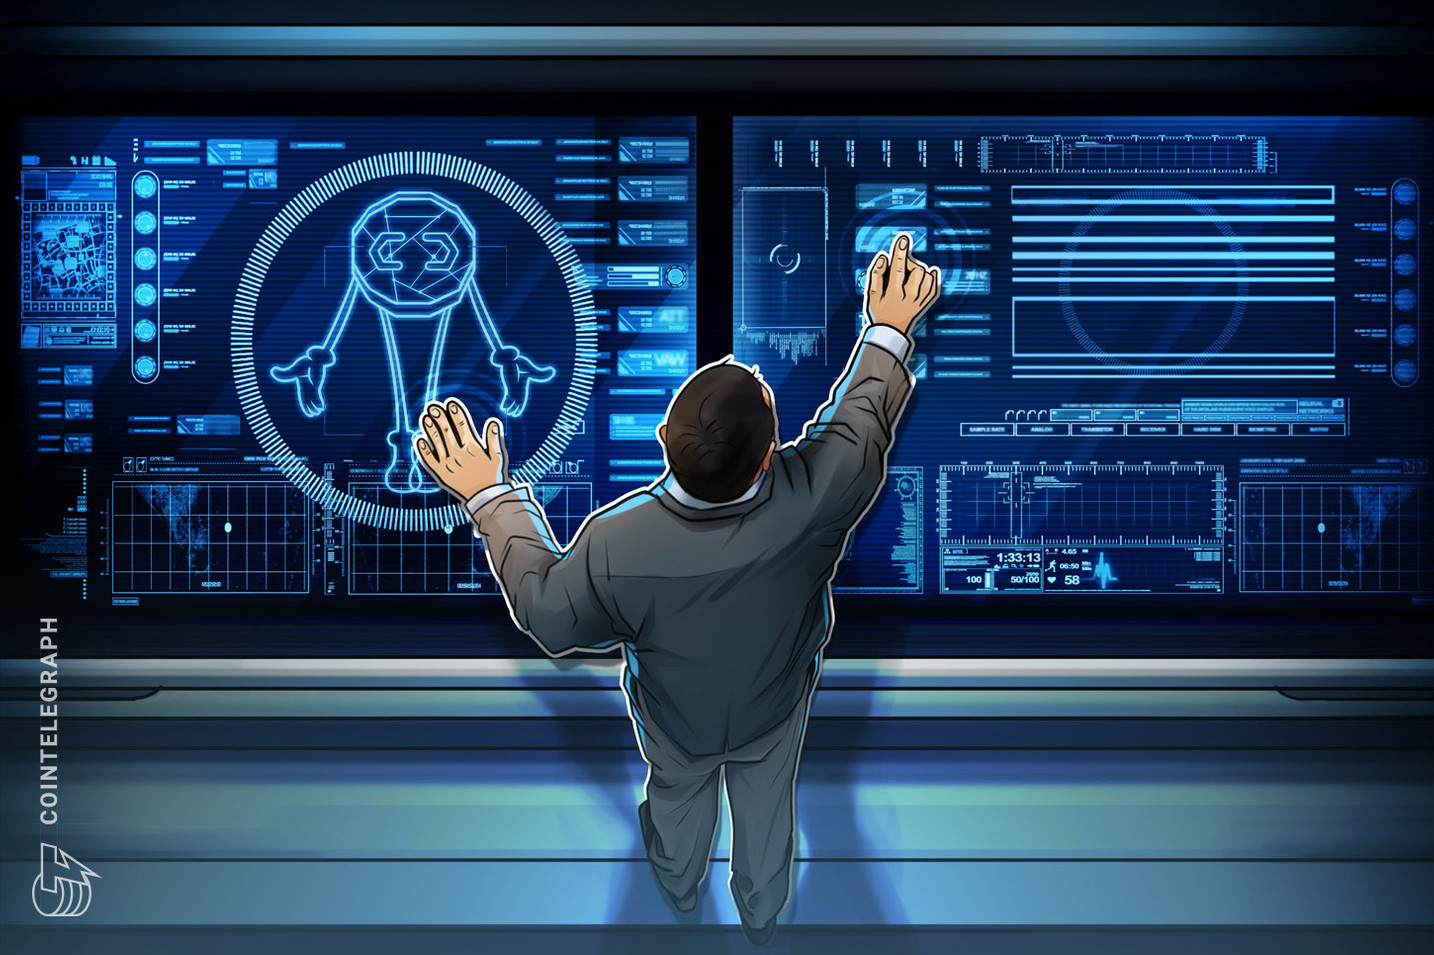 TeraBlock exchange raises $2.4M to develop crypto newbie-friendly interface